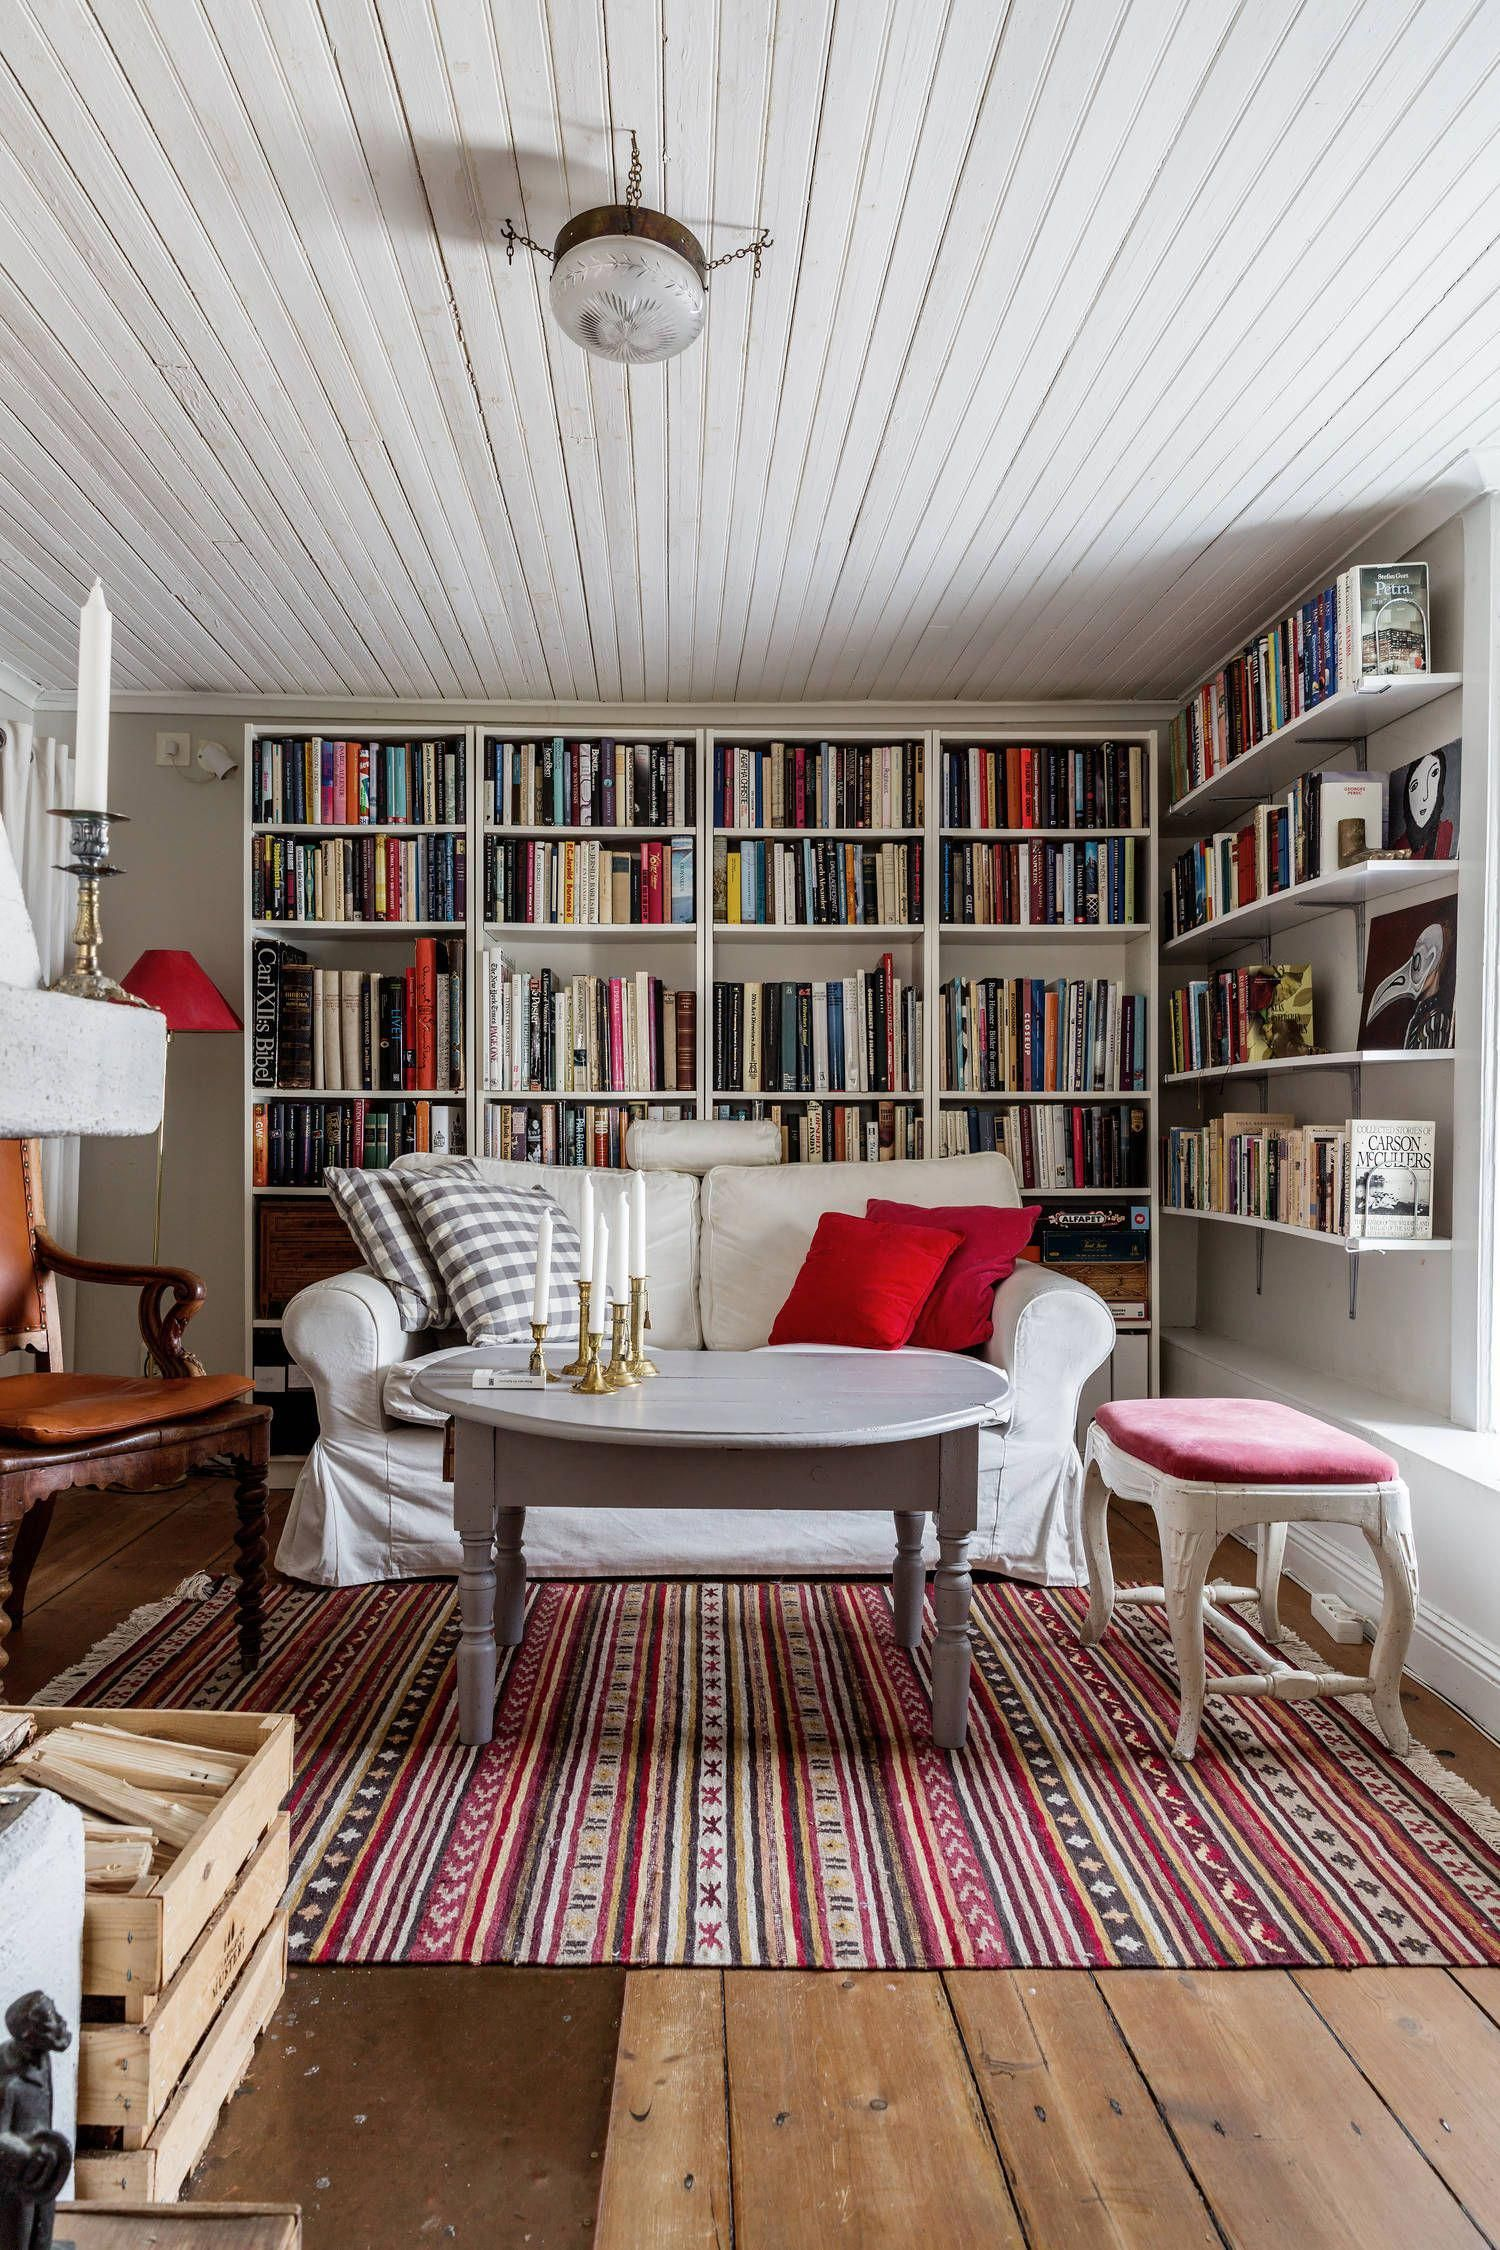 Interior Design Library Room: 8 Essential For An Oriental Inspired Decor